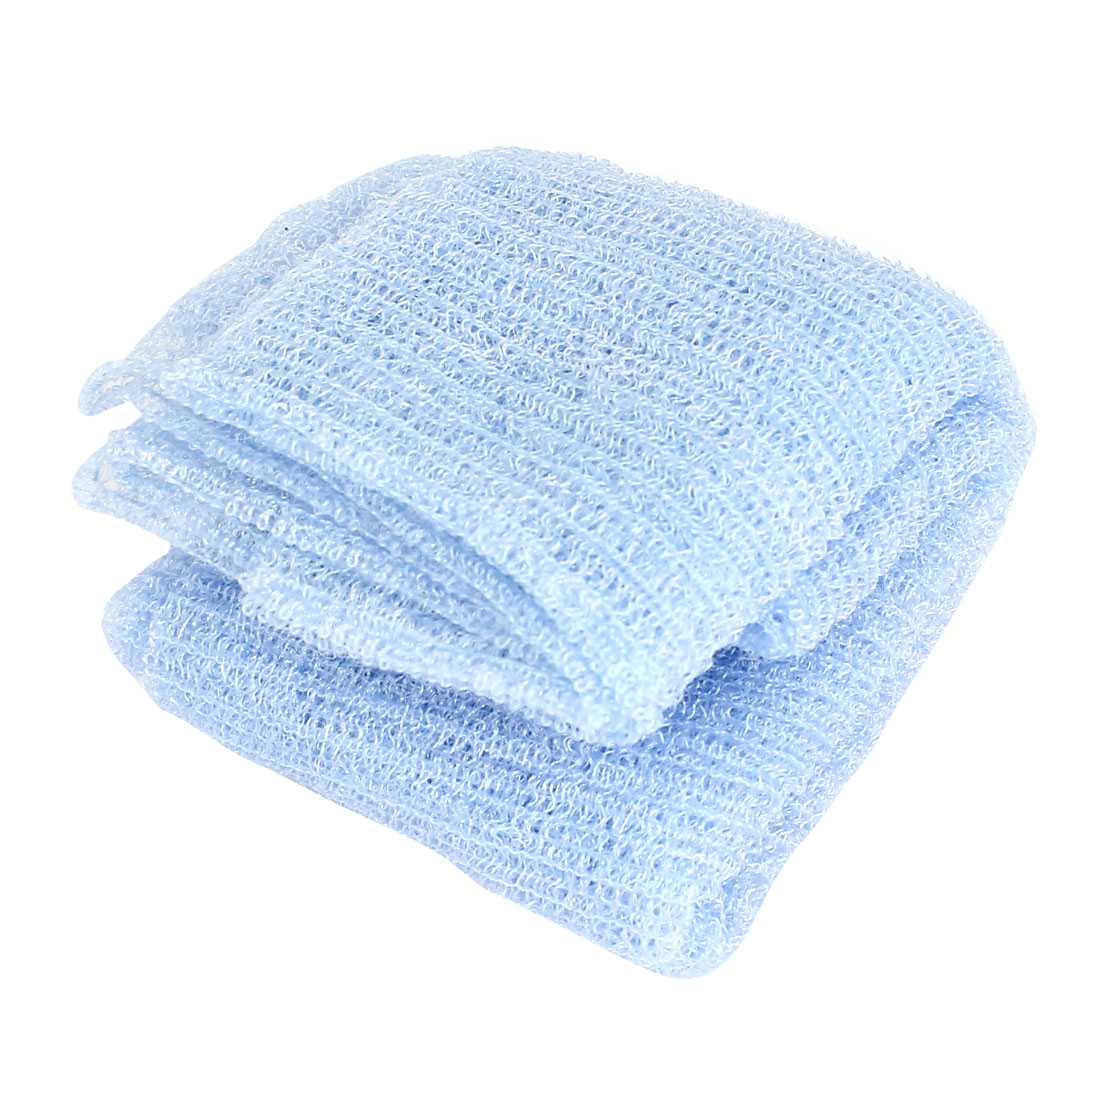 110cm x 30cm Nylon Mesh Style Bath Shower Towel Washcloths Blue